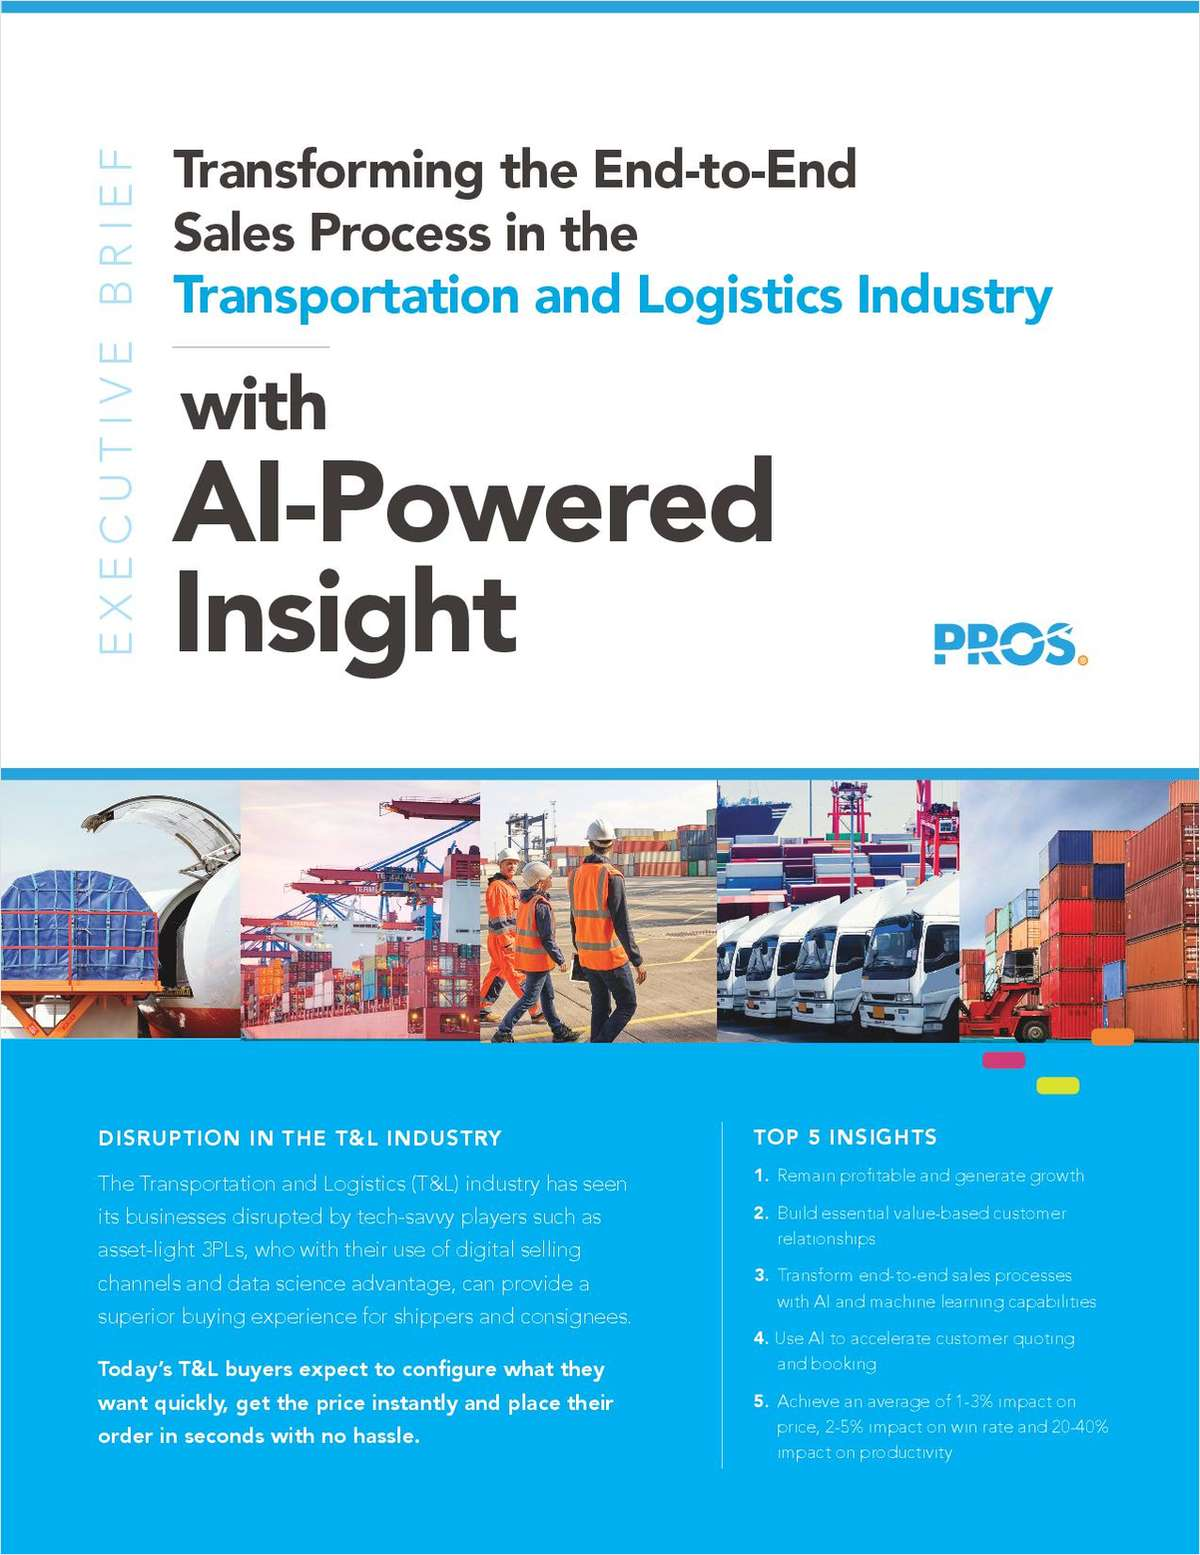 Transforming the End-to-End Sales Process in the Transportation and Logistics Industry with AI-Powered Insight